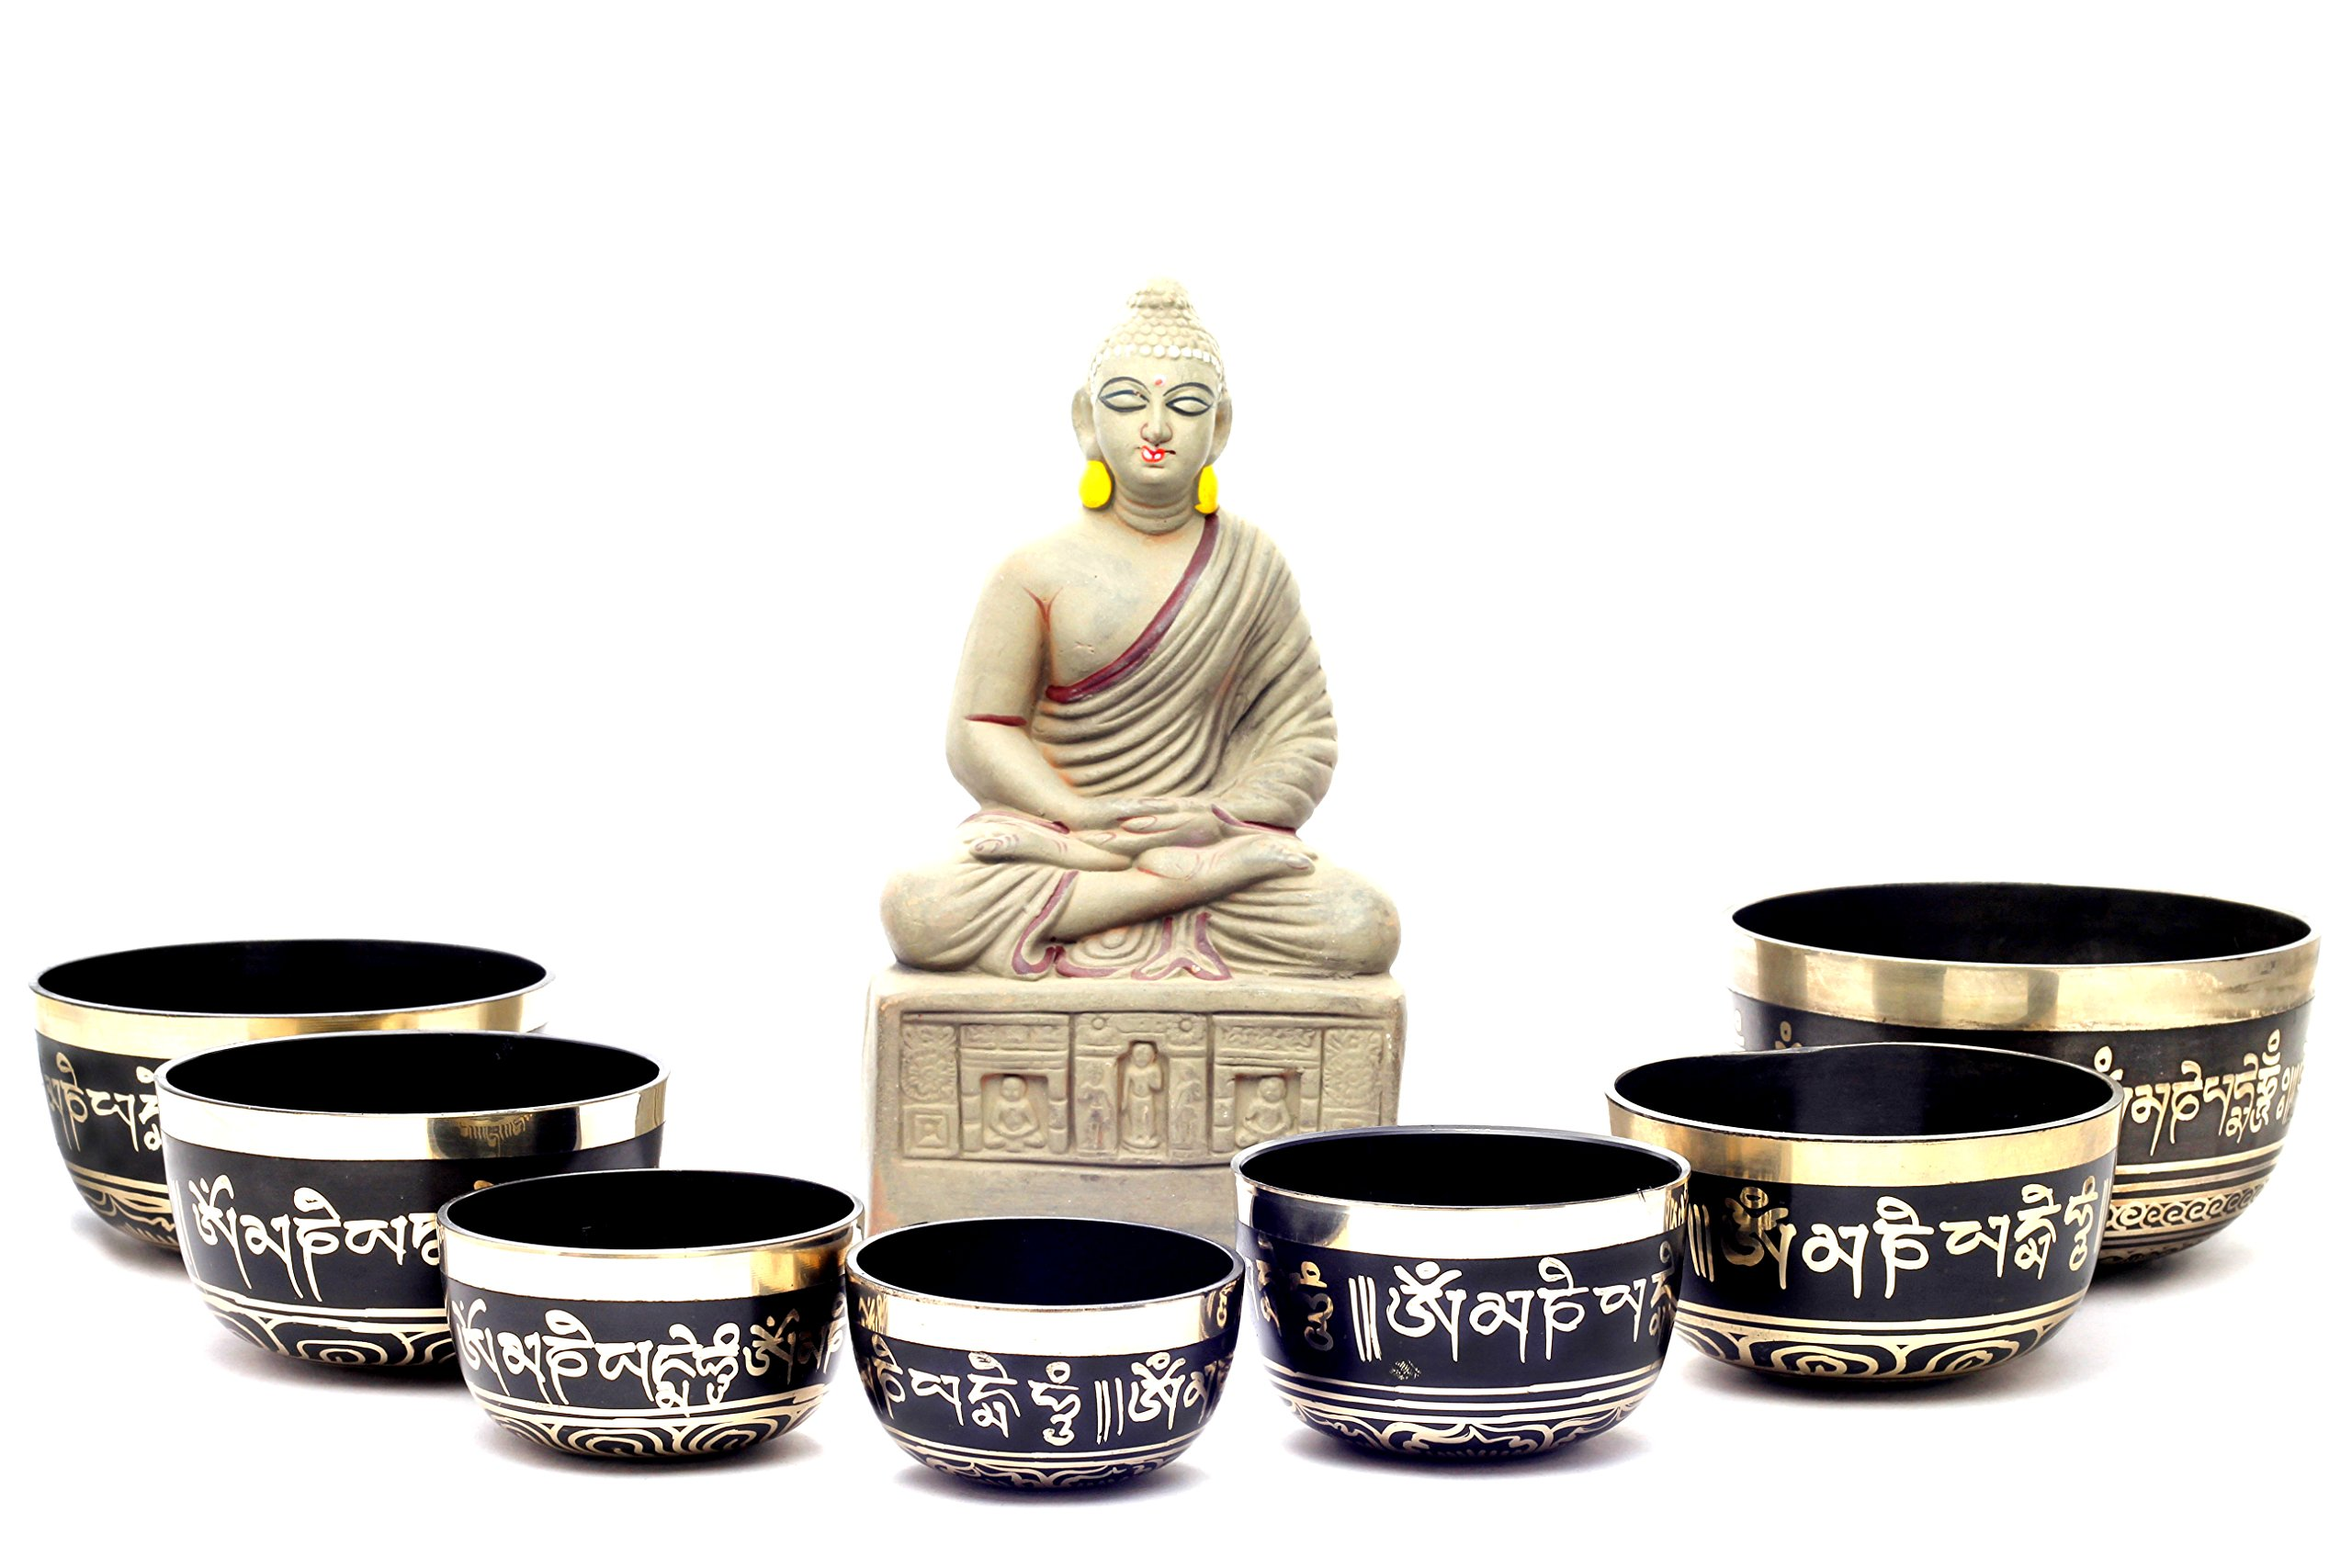 Chakra Healing Tibetan Singing Bowl Sets 7 Sets of Meditation Bowls From Nepal (Black painted) by TM THAMELMART FOR BEAUTIFUL MINDS